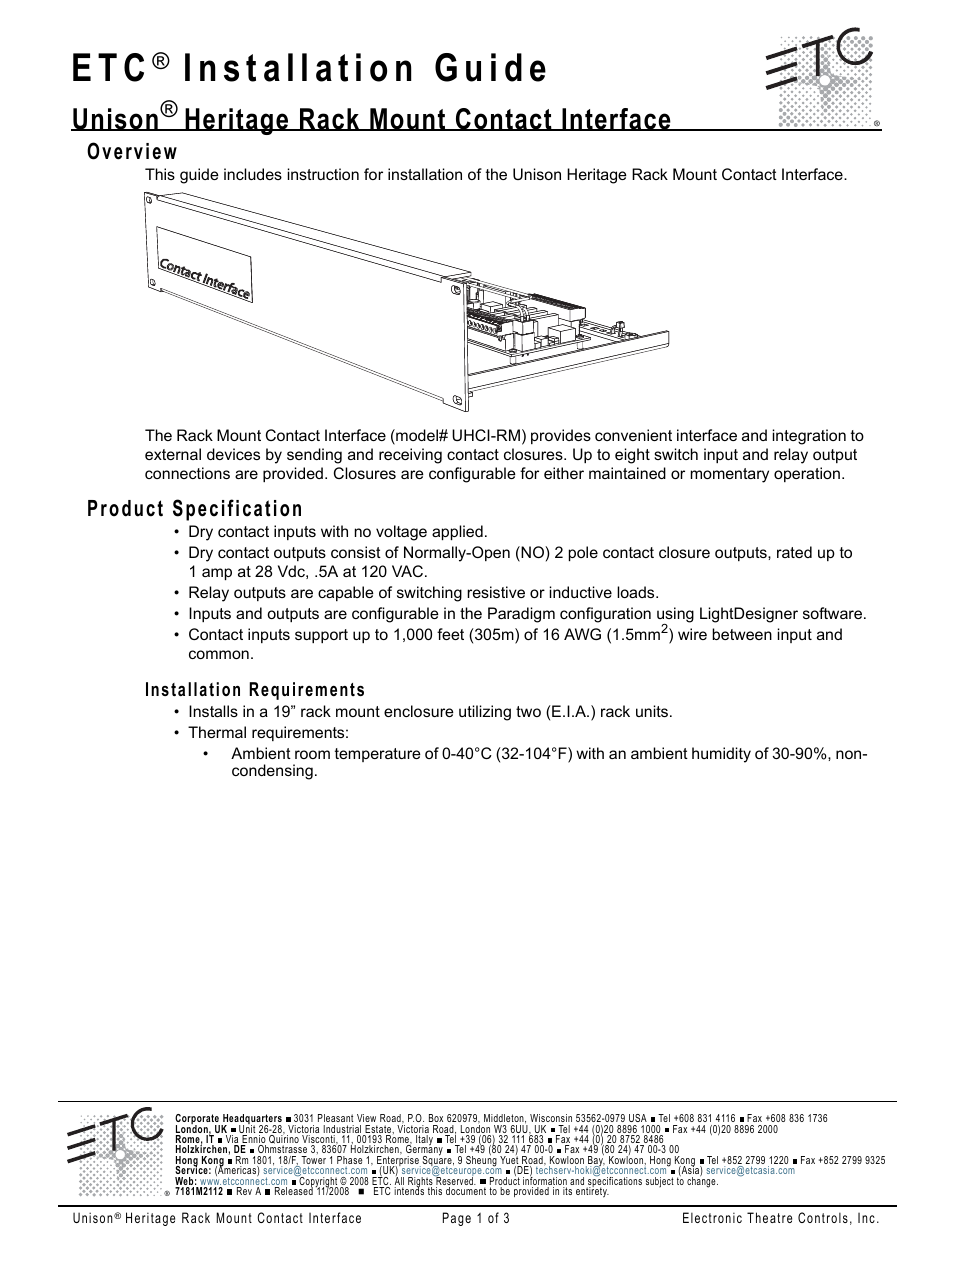 Etc Unison Heritage Rackmount Contact Interface User Manual 3 Pages How To Switch Highly Inductive Loads Using Digital I O Manuals